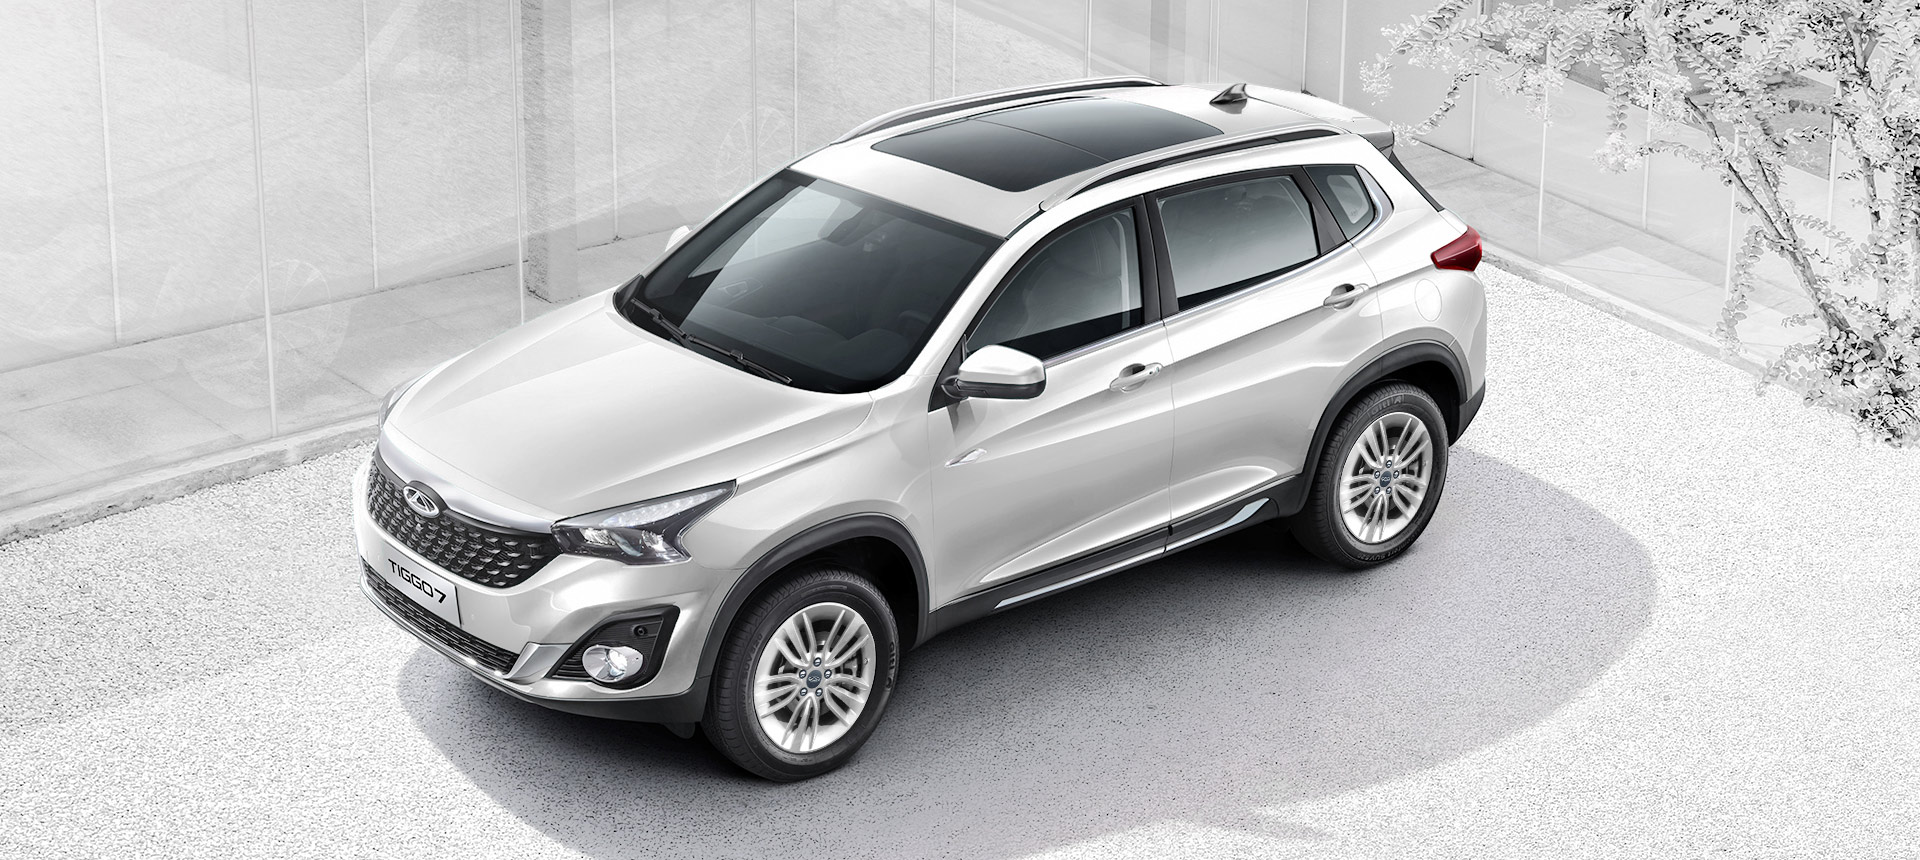 Chery Tiggo7 1.5 Turbo White color